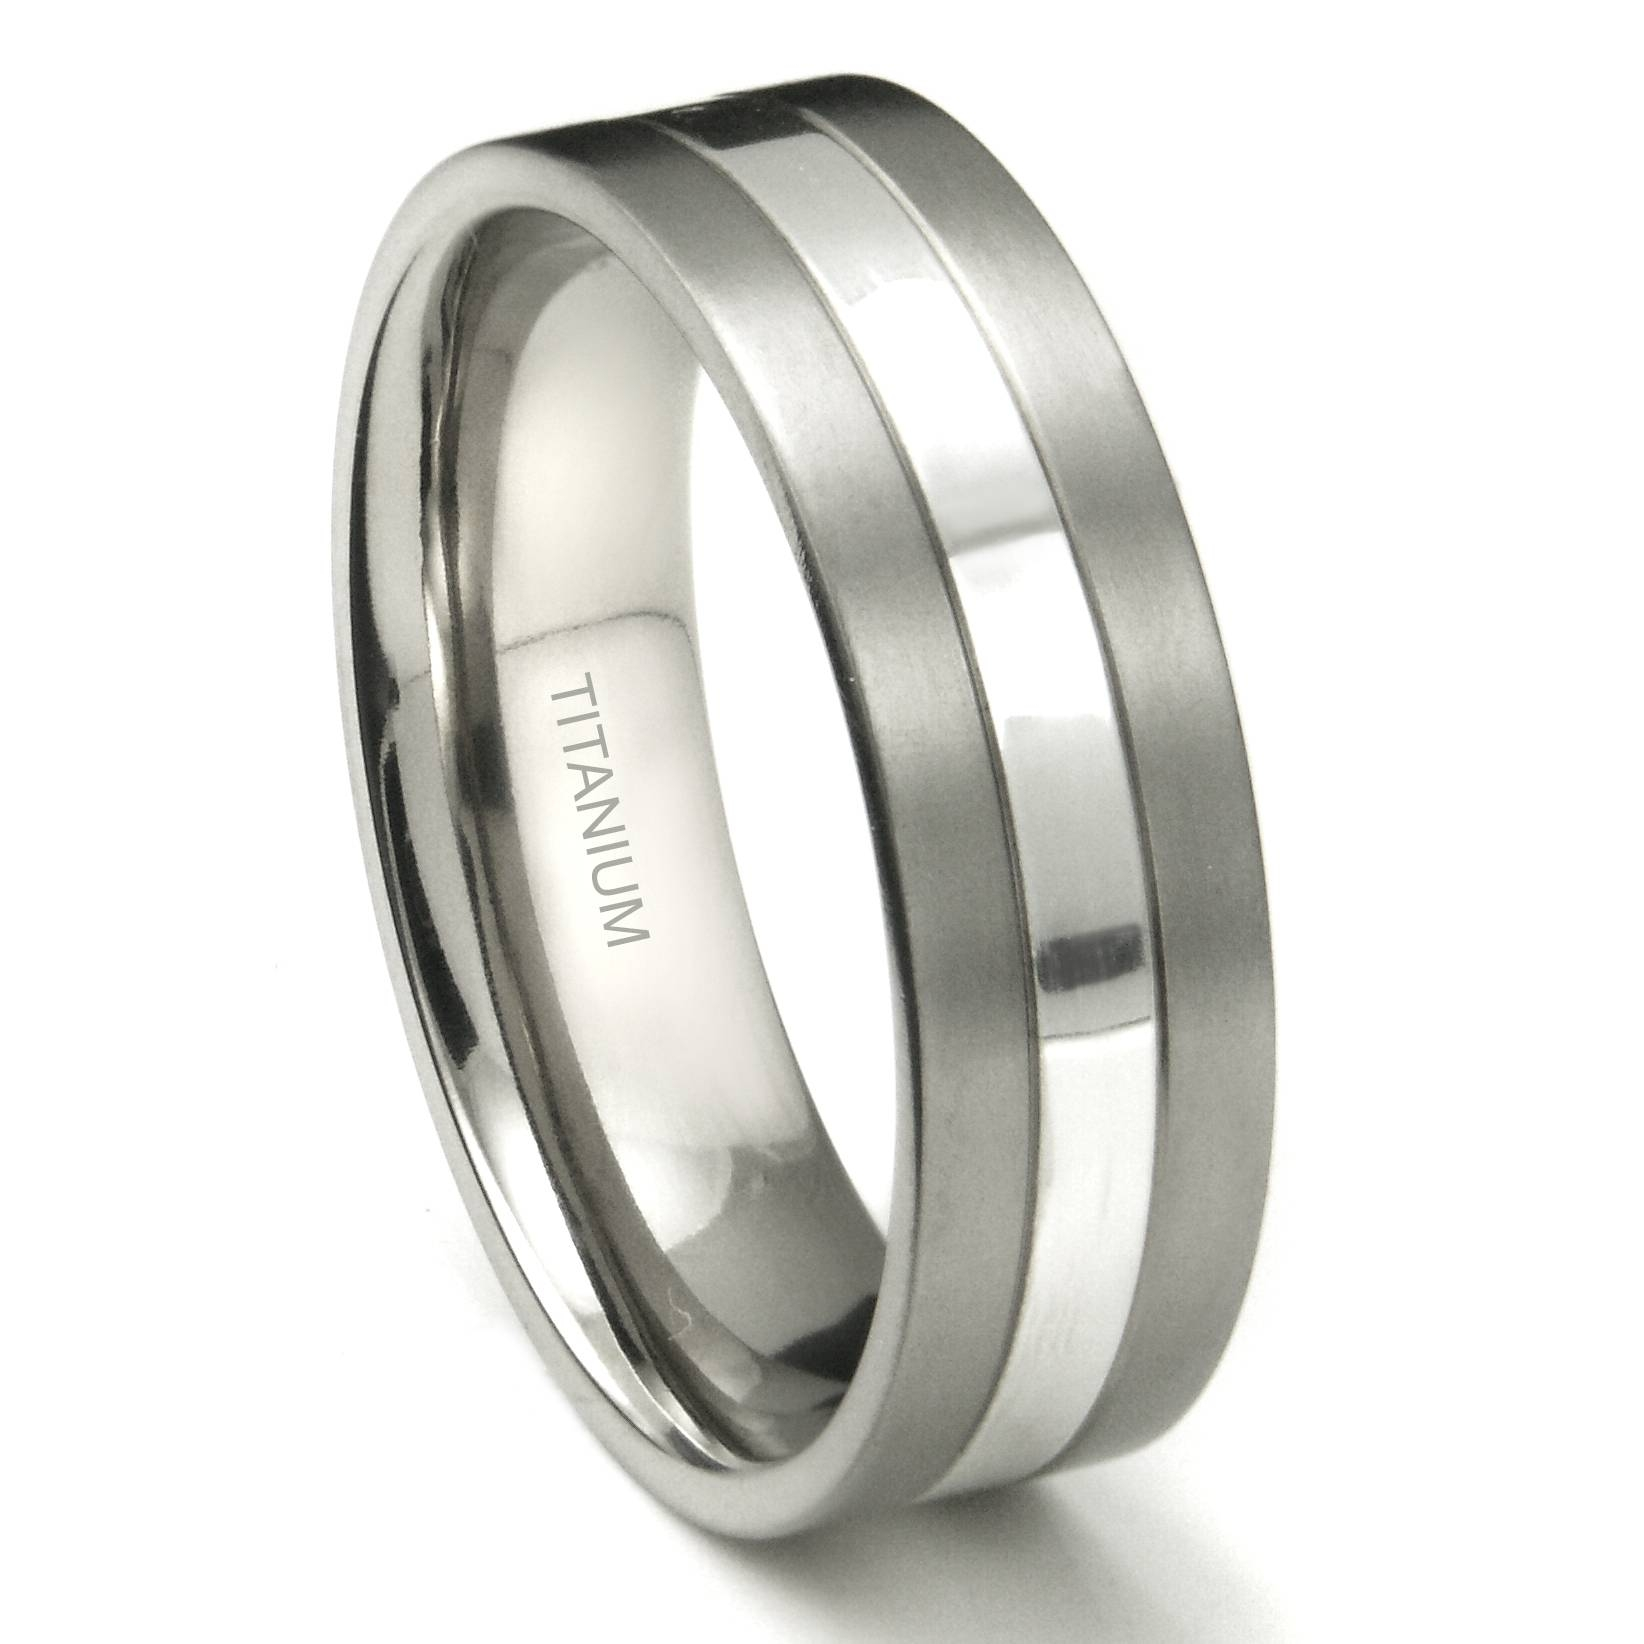 Titanium 7Mm Two Tone Wedding Ring Intended For 7Mm Titanium Wedding Bands (Gallery 10 of 15)